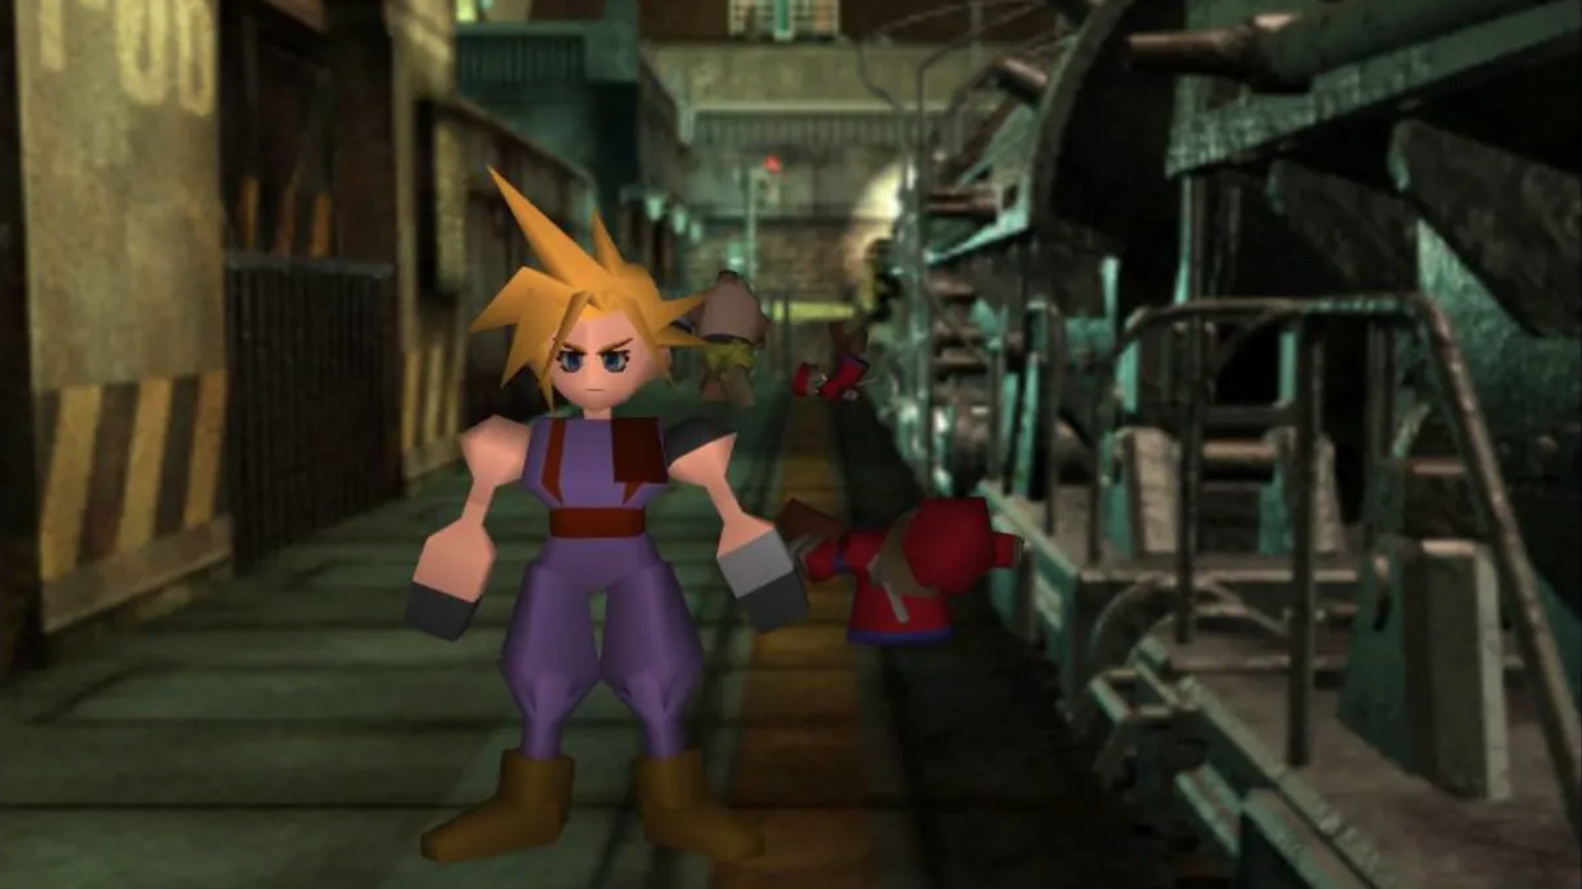 Looks Like Final Fantasy VII On Switch Has Reintroduced A Bug That ...